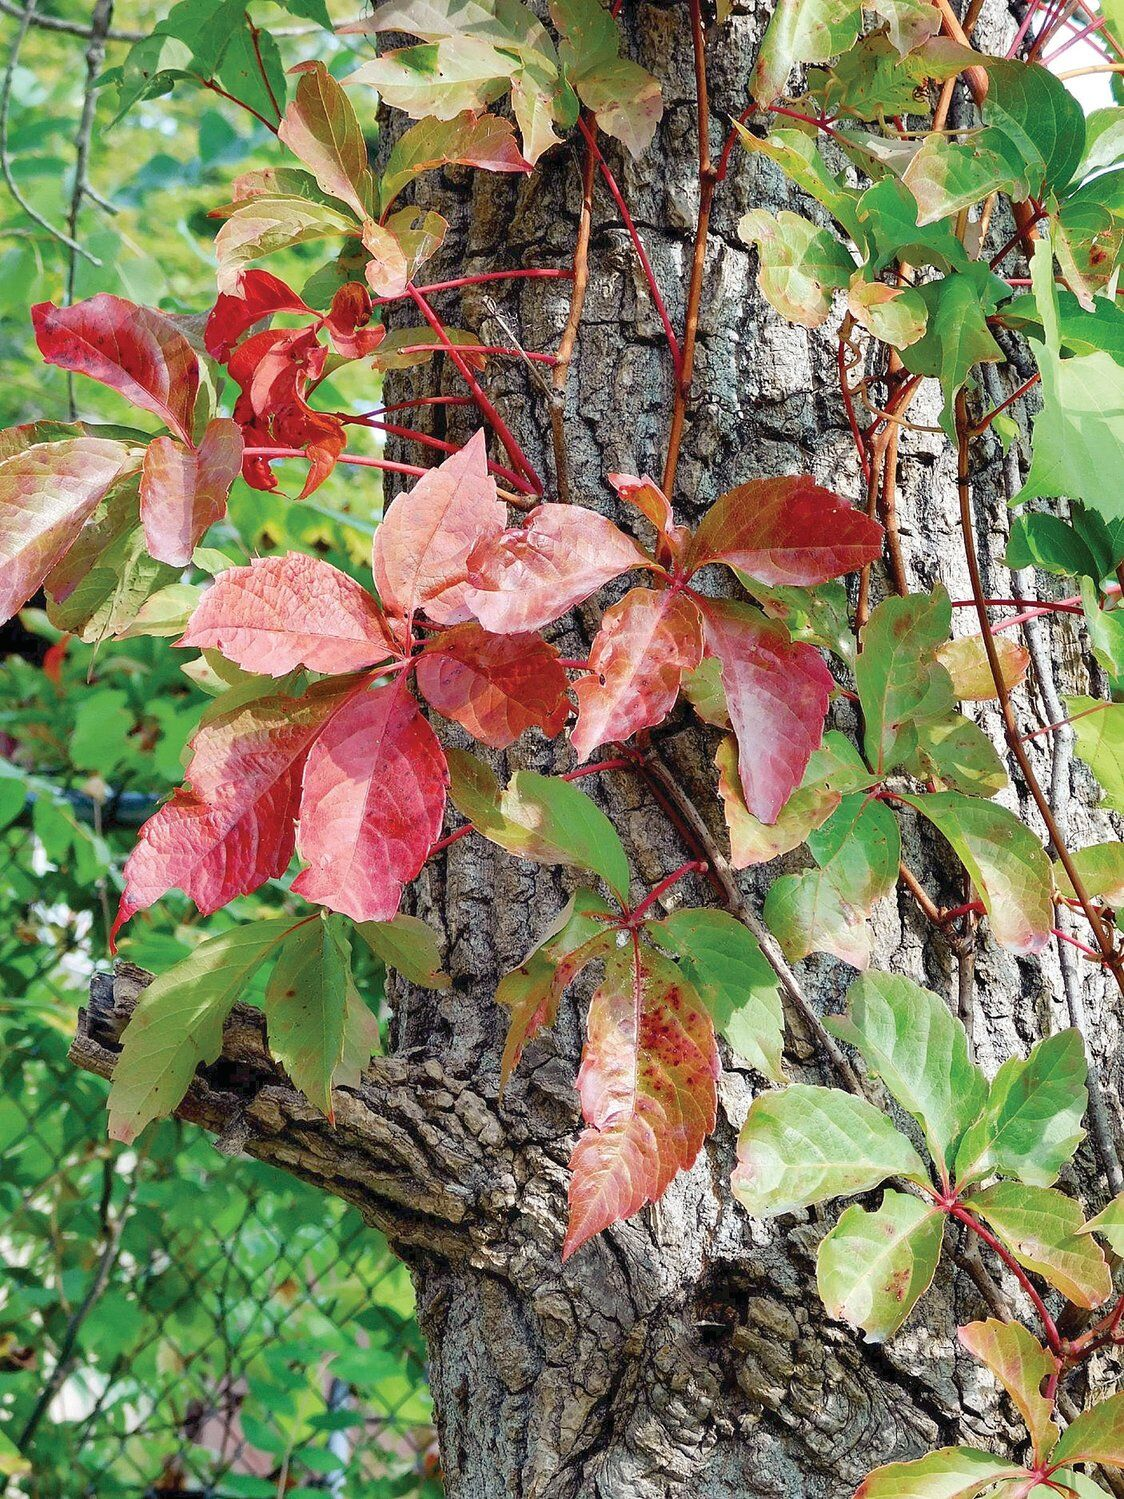 Thom Smith | NatureWatch: Learn about climbers, stranglers and vines